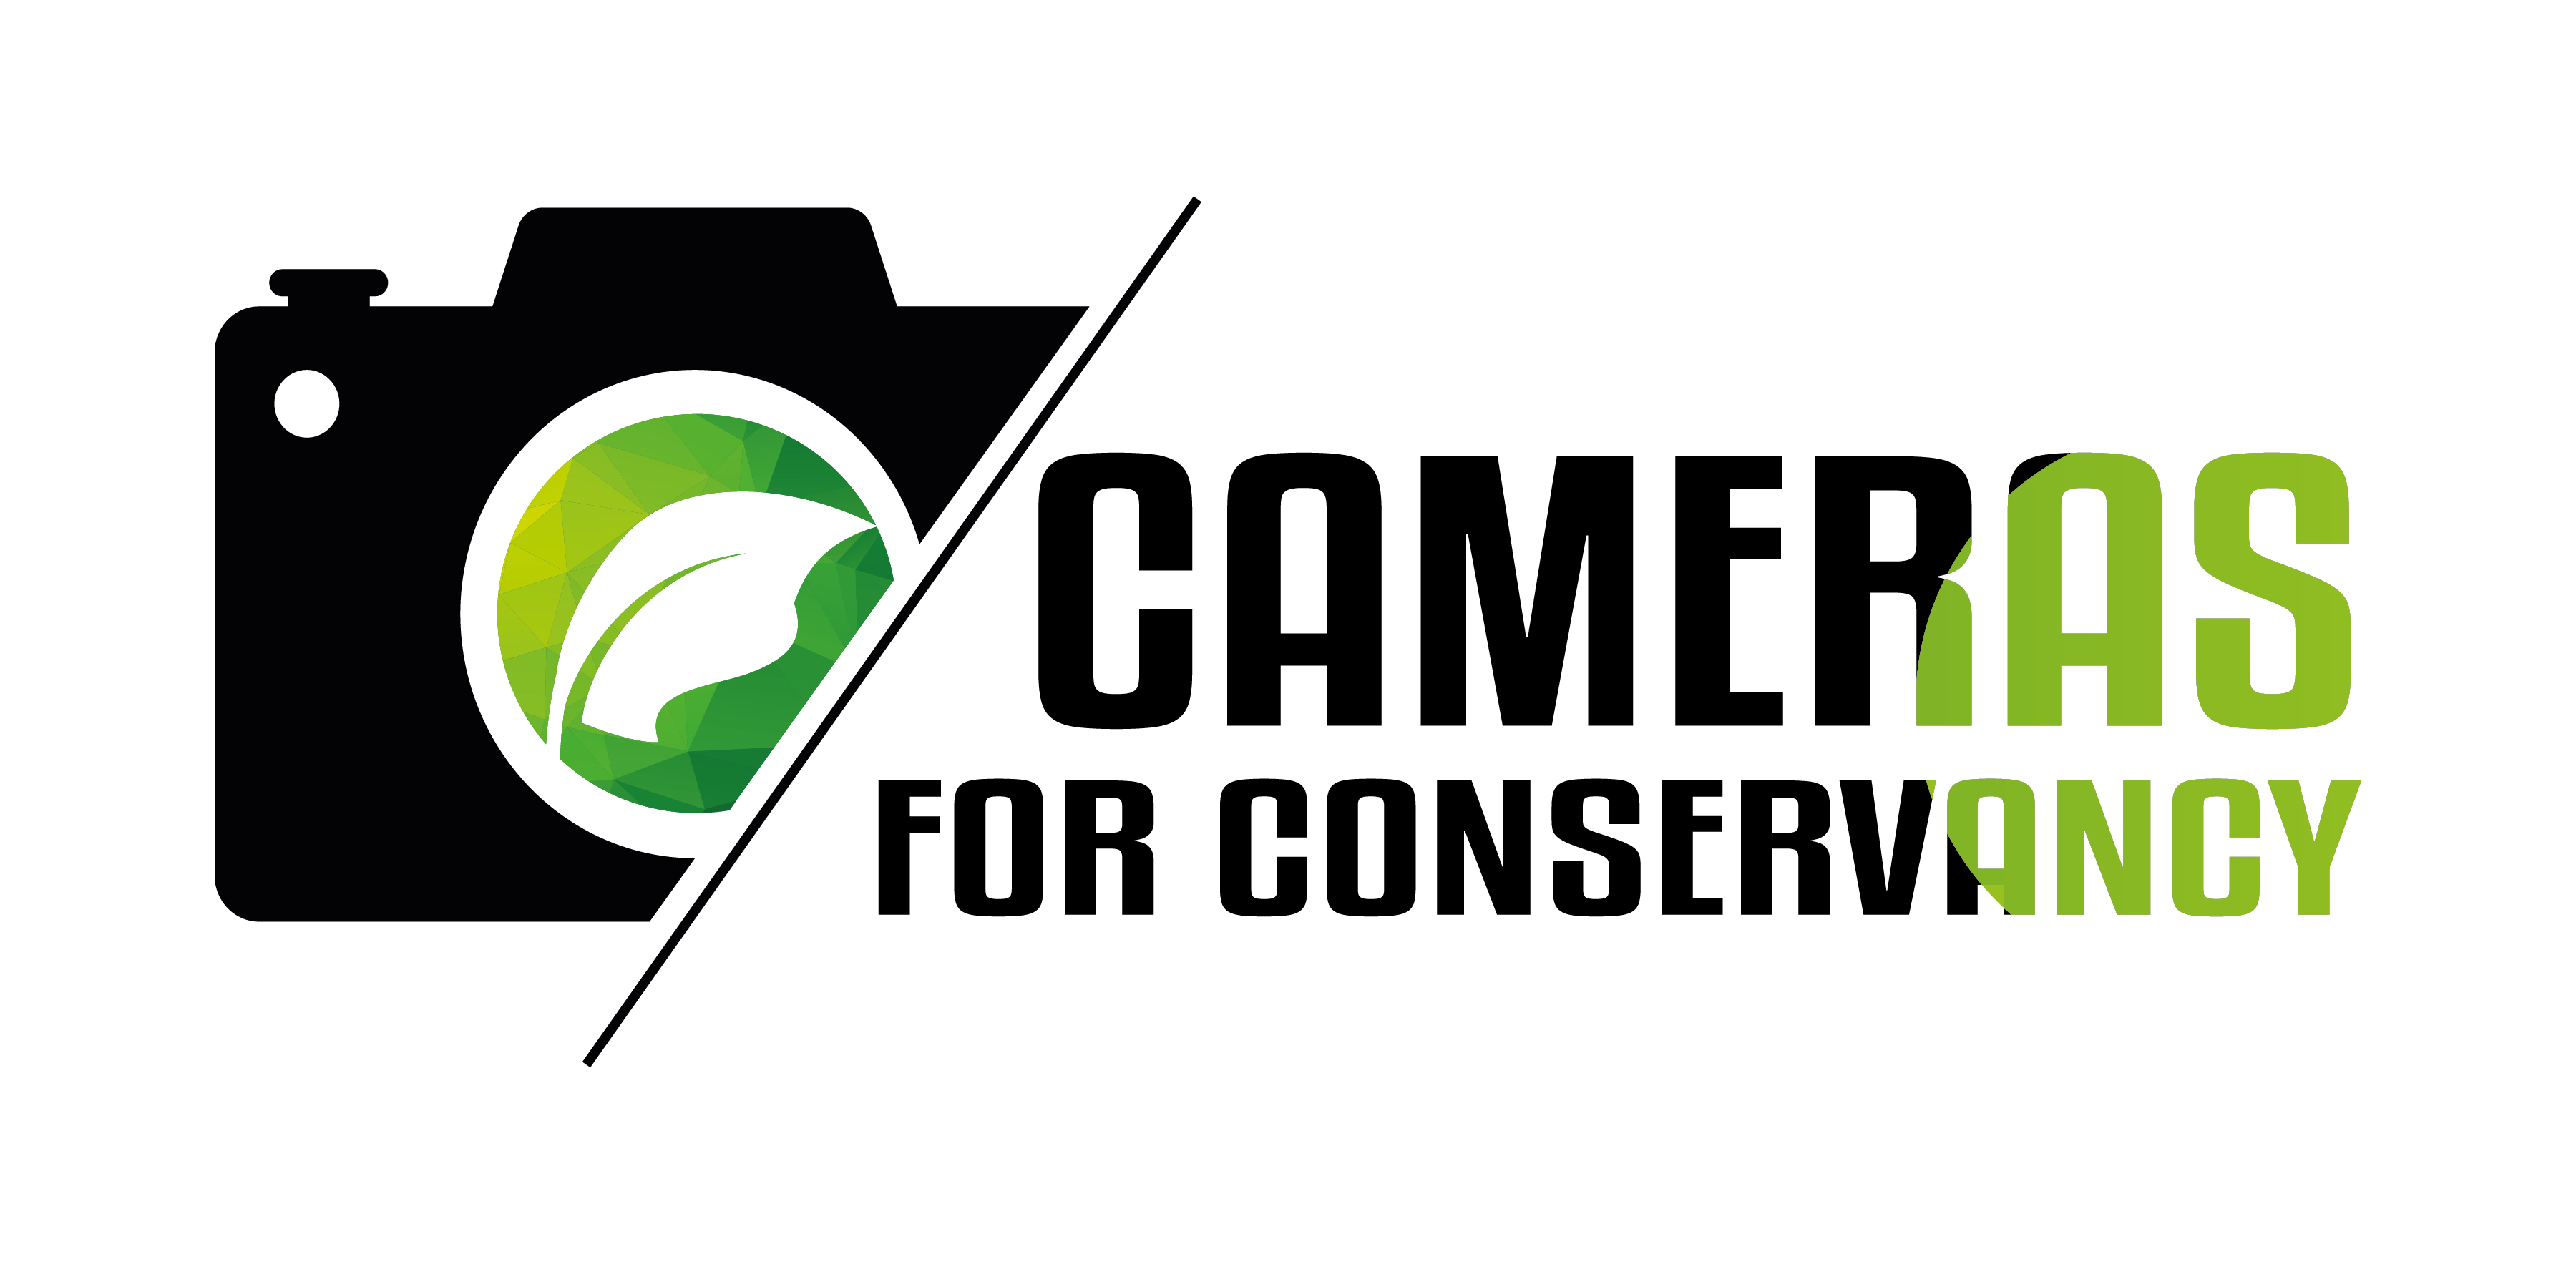 Cameras for Conservancy